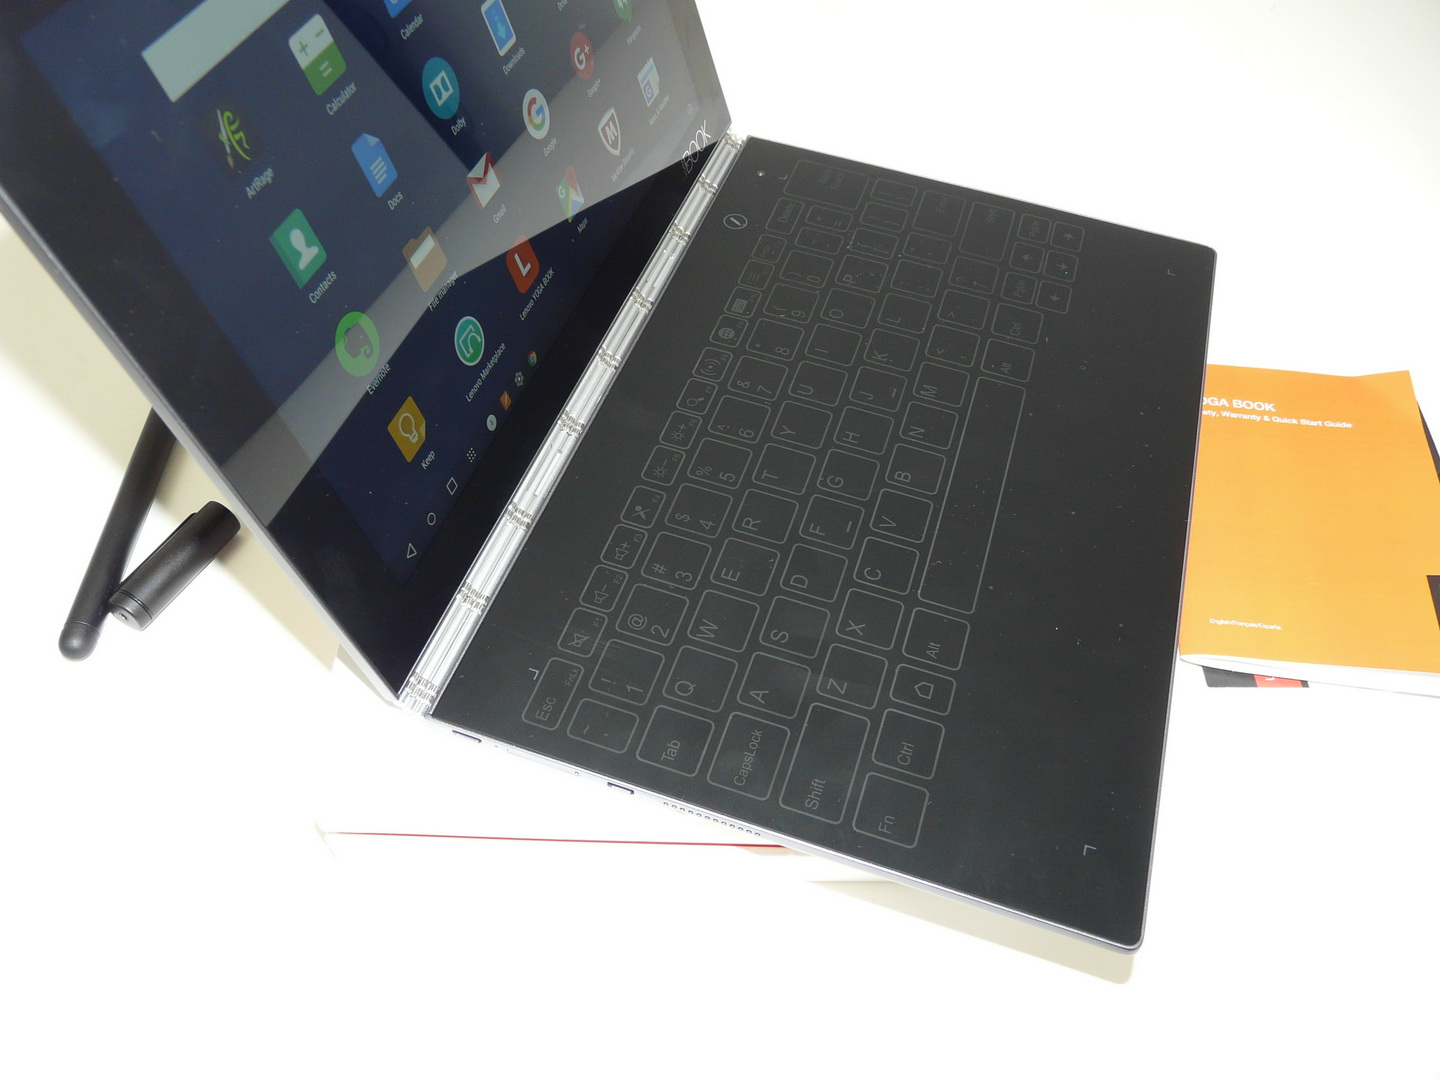 Lenovo Yoga Book Unboxing (Android): Stunning Machine with Virtual